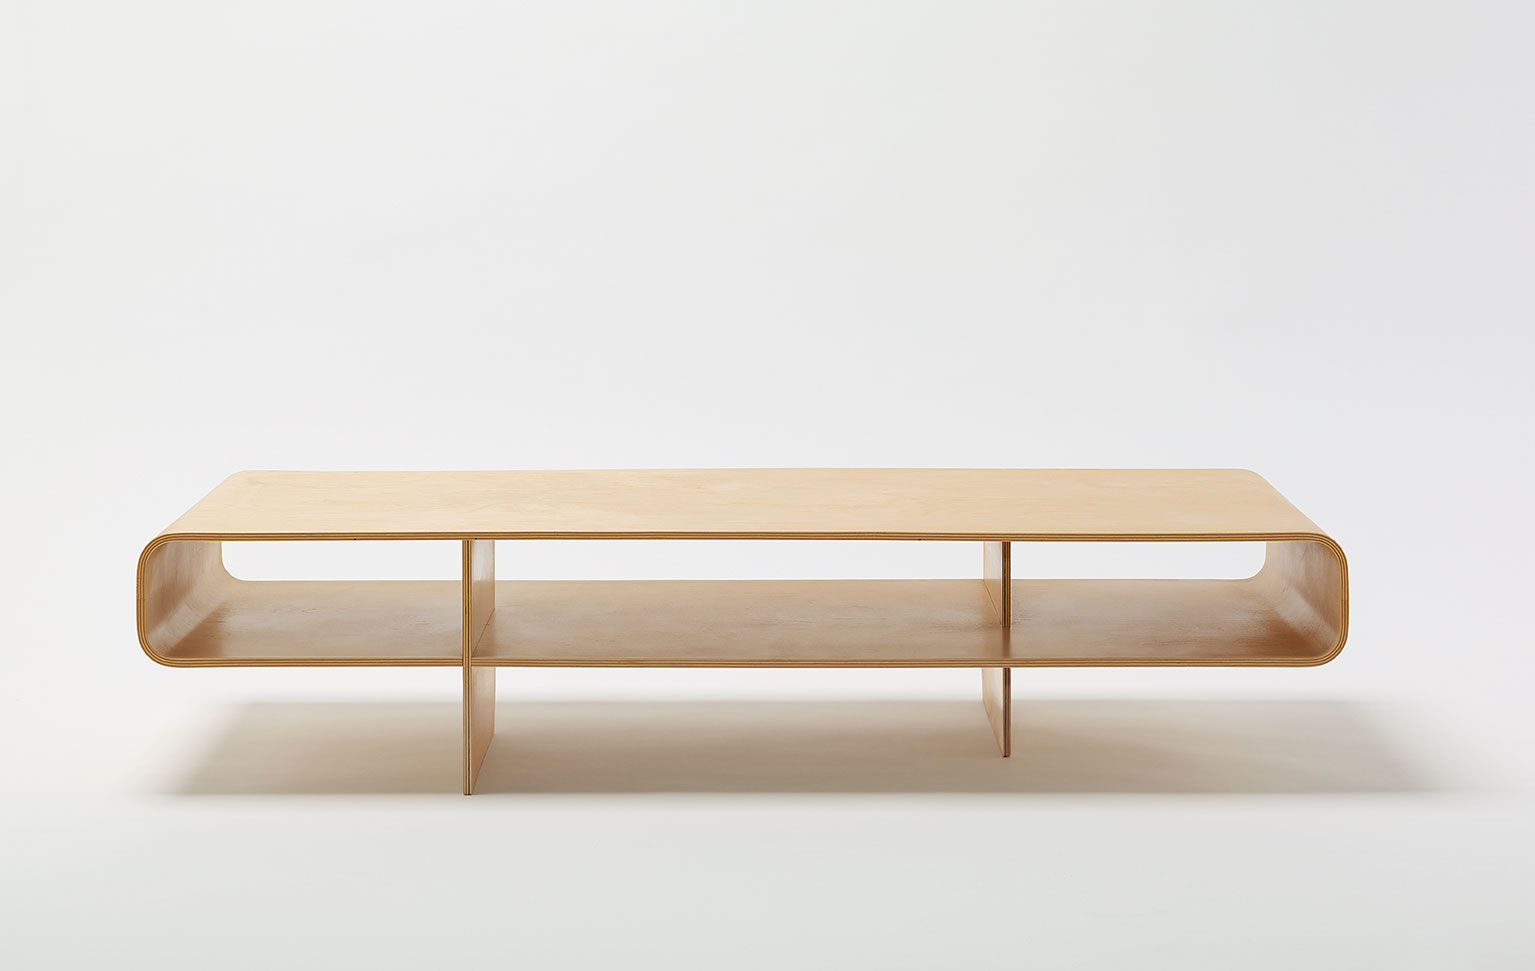 The Loop Table, 1996 by Barber and Osgerby for Isokon Plus